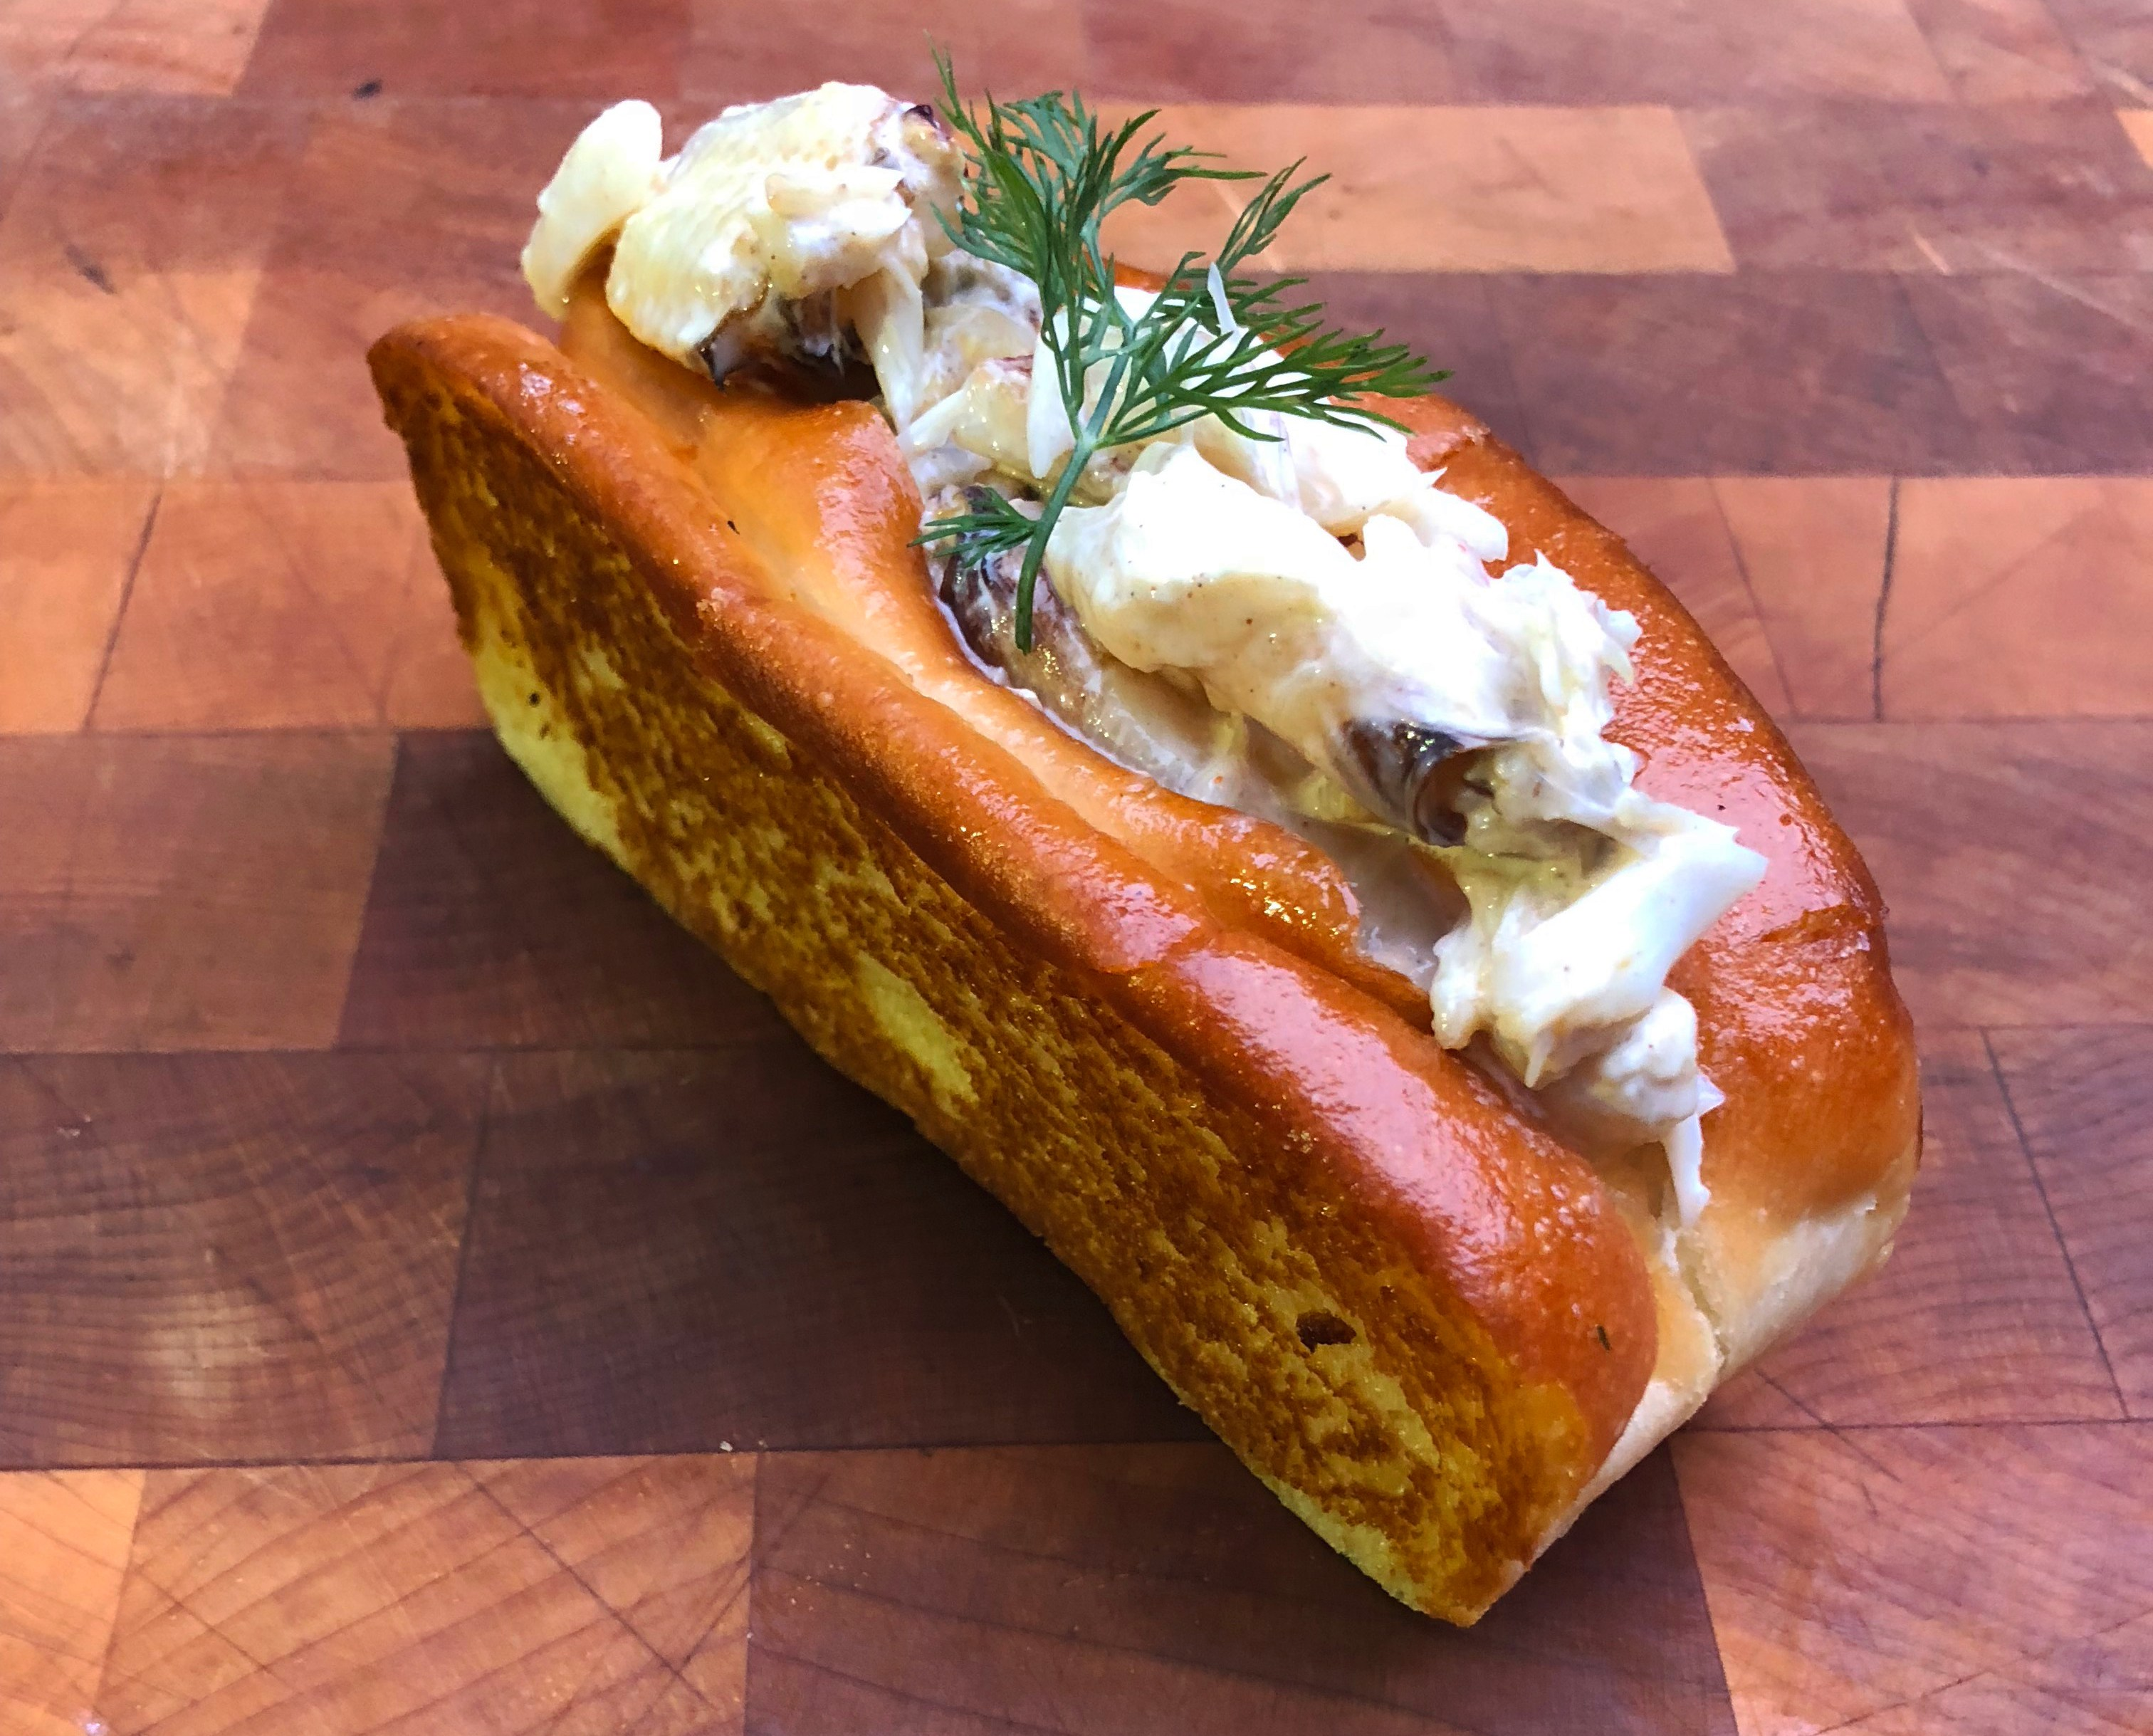 Pictured is a crab roll from Fremont's Local Tide